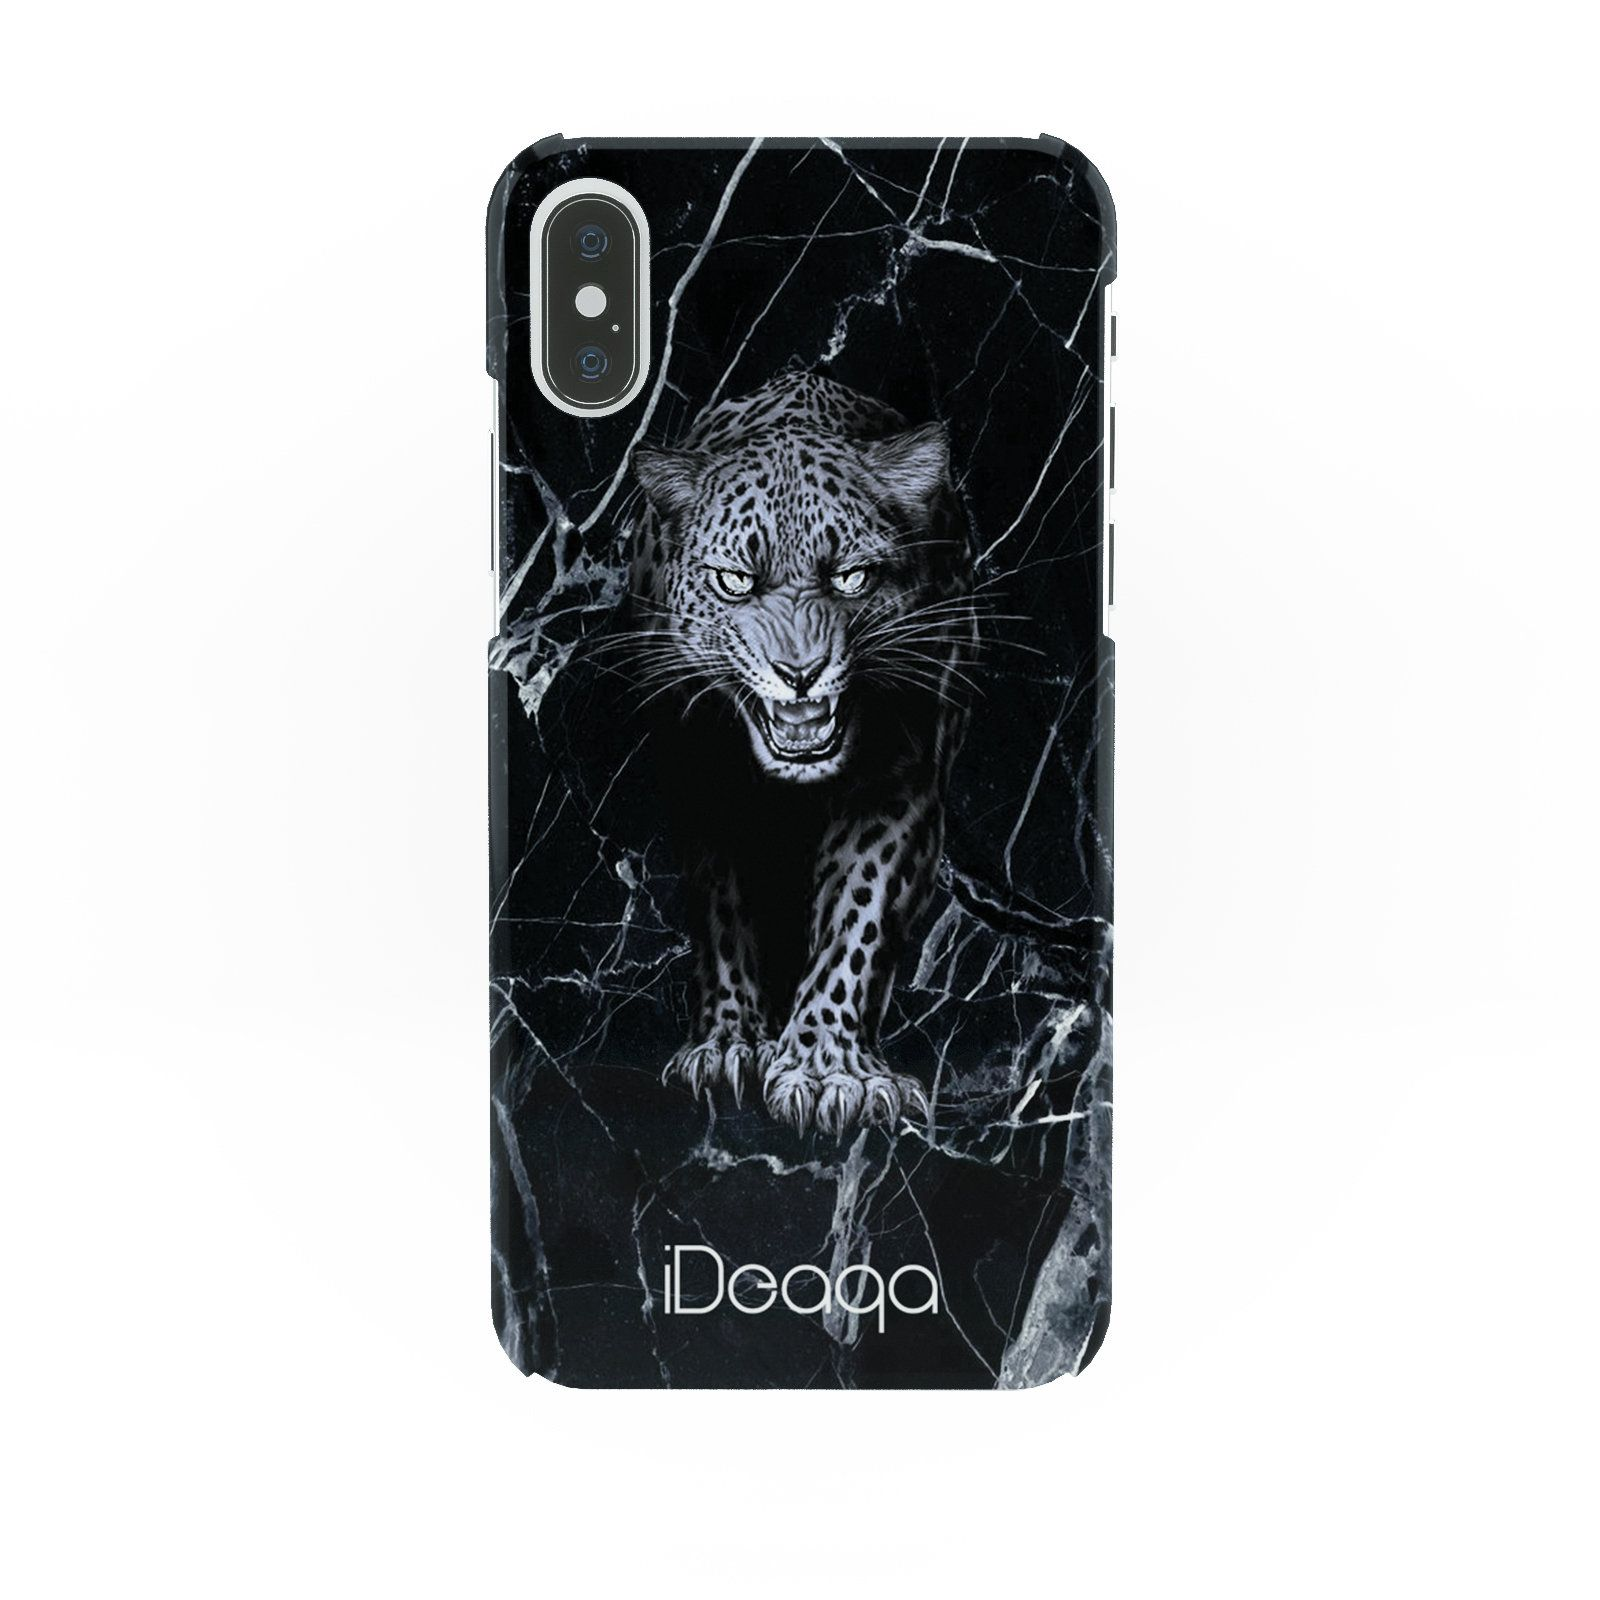 premium selection 12691 f7197 iDeaqa Marble Jaguar Black Animals Protective Hard Case Cover For ...